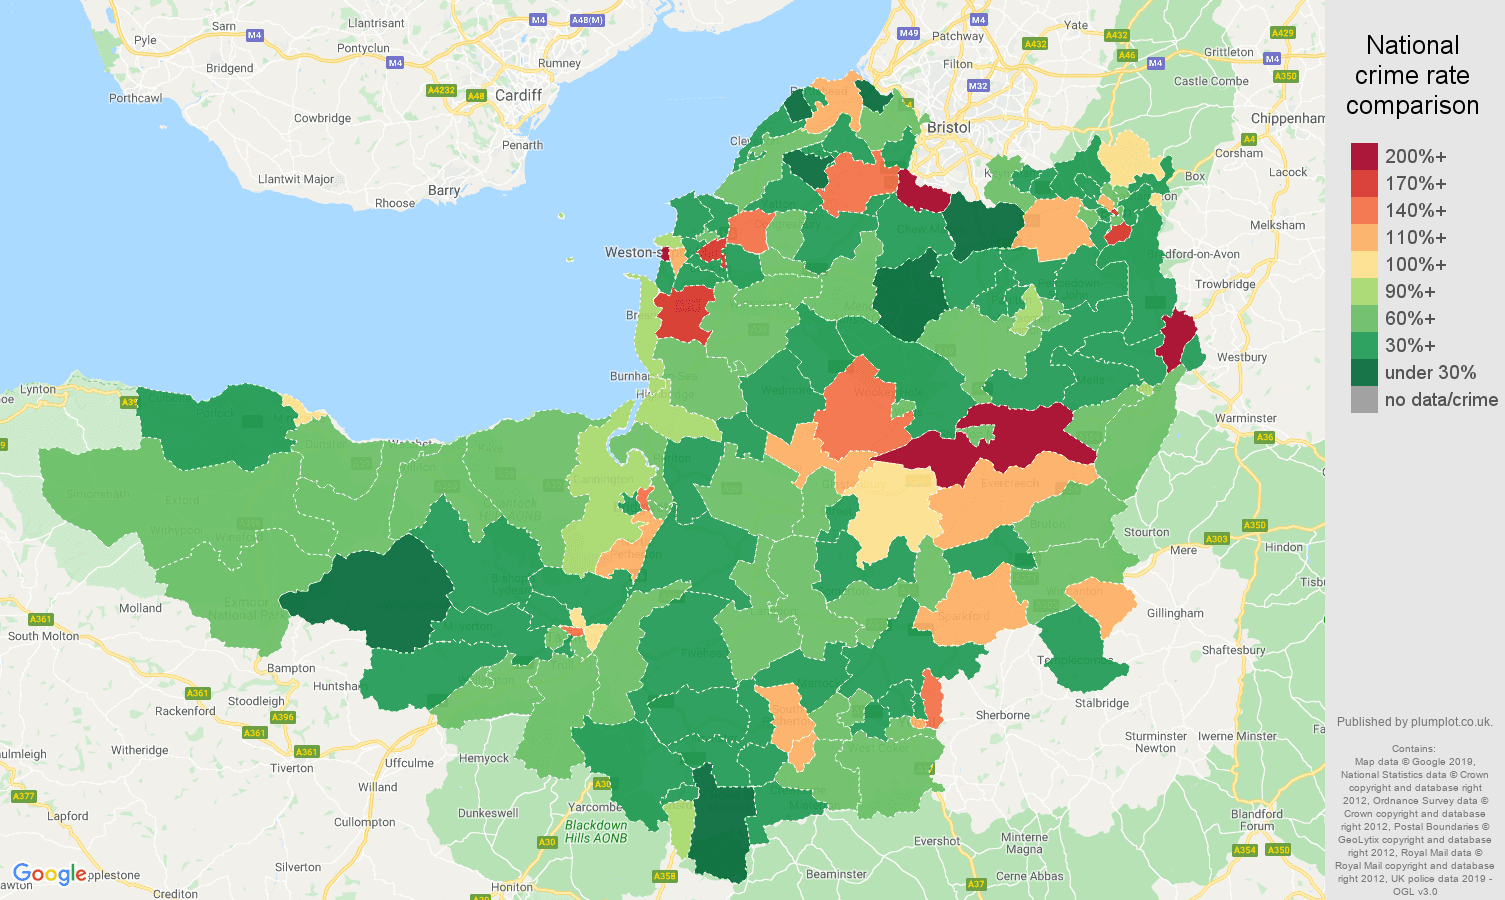 Somerset other theft crime rate comparison map